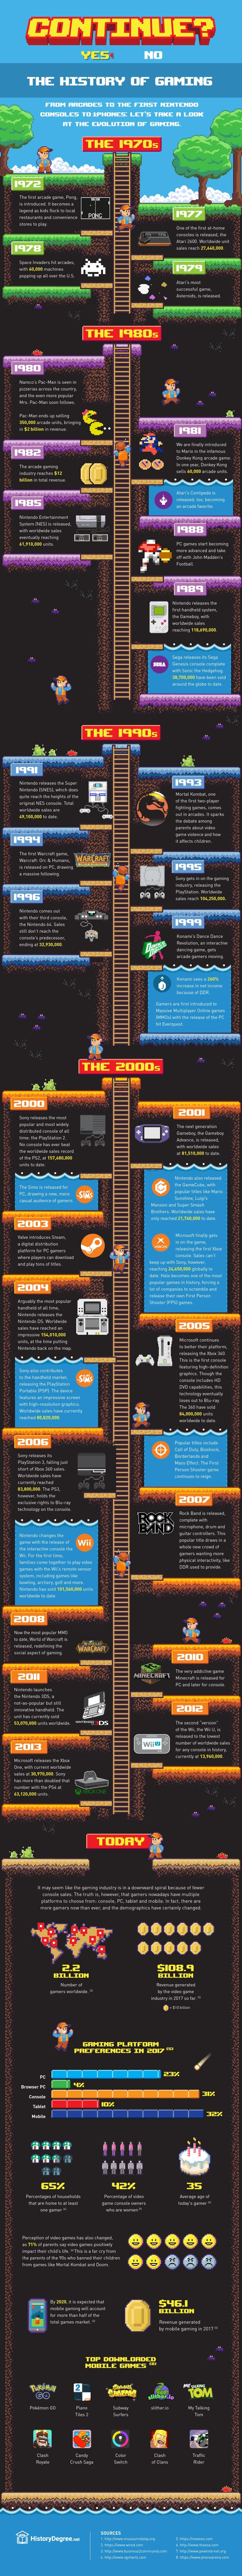 The History of Gaming - #infographic